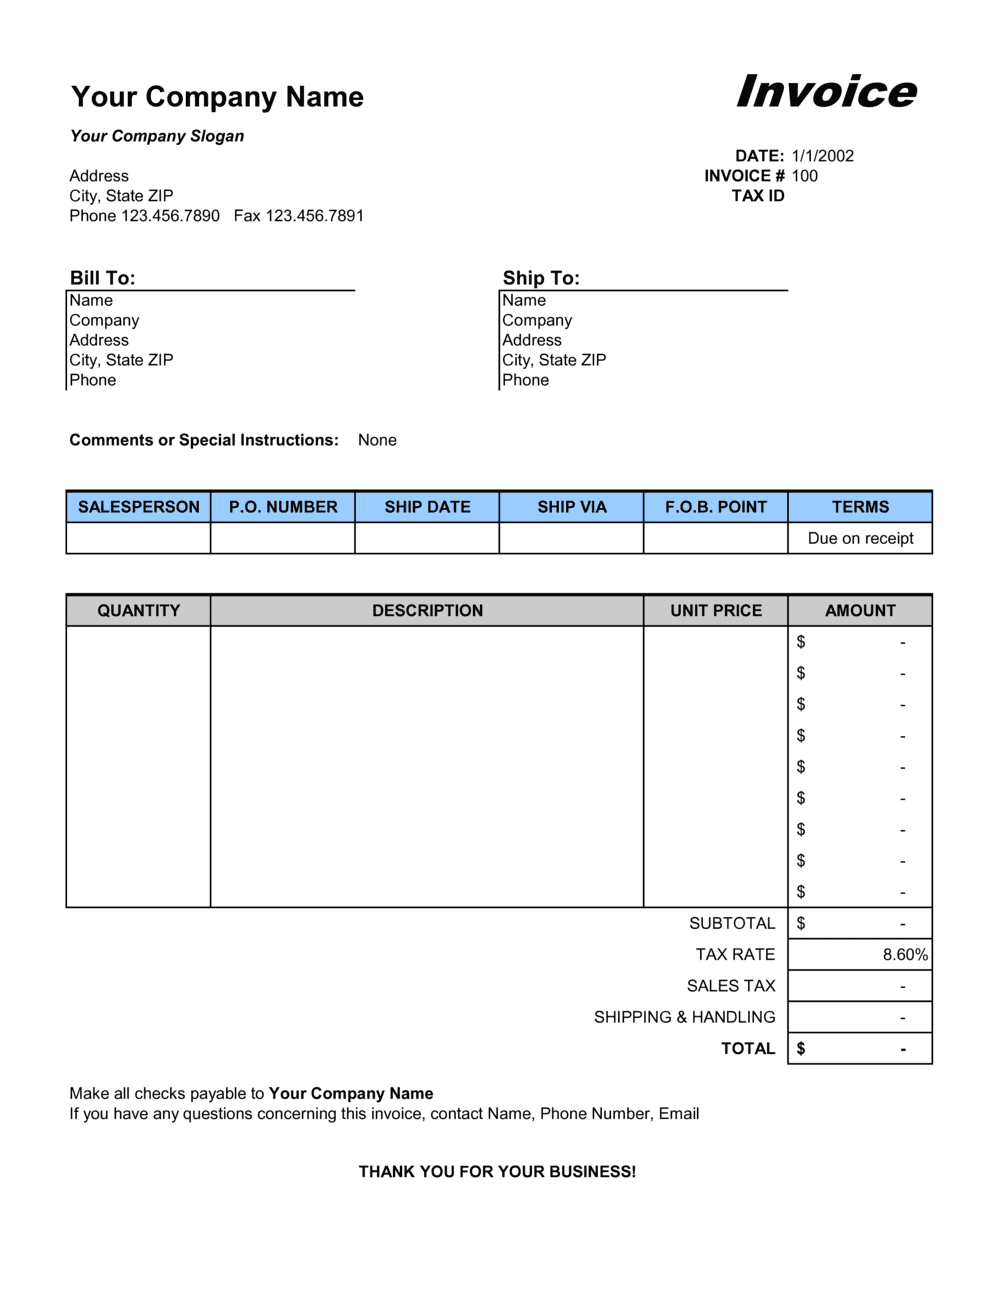 Business-in-a-Box's Sales Invoice - Excel Template